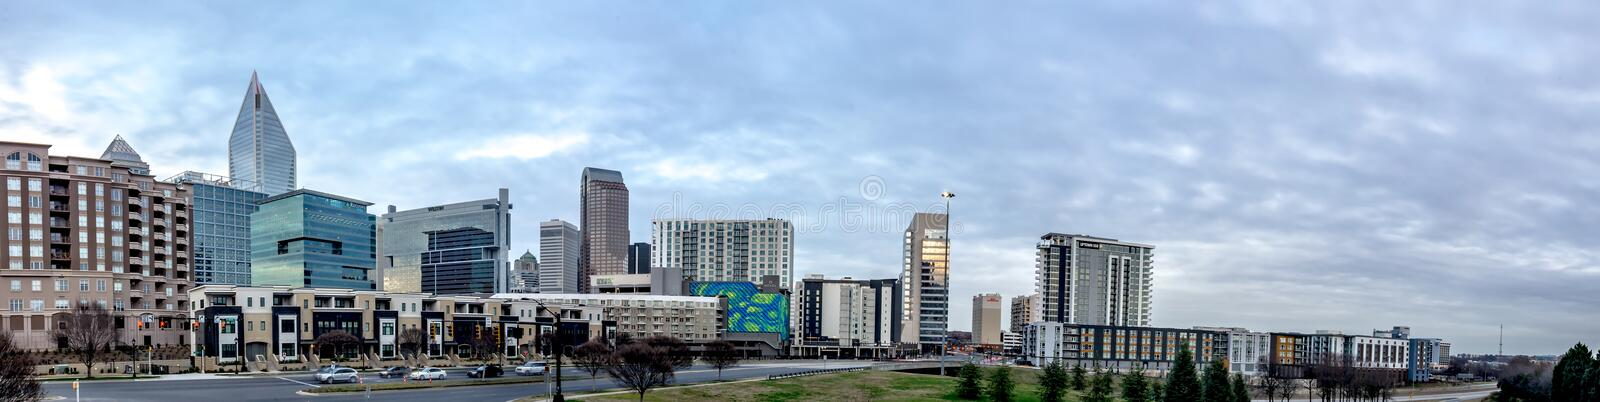 Views of charlotte north crolina city skyline royalty free stock images